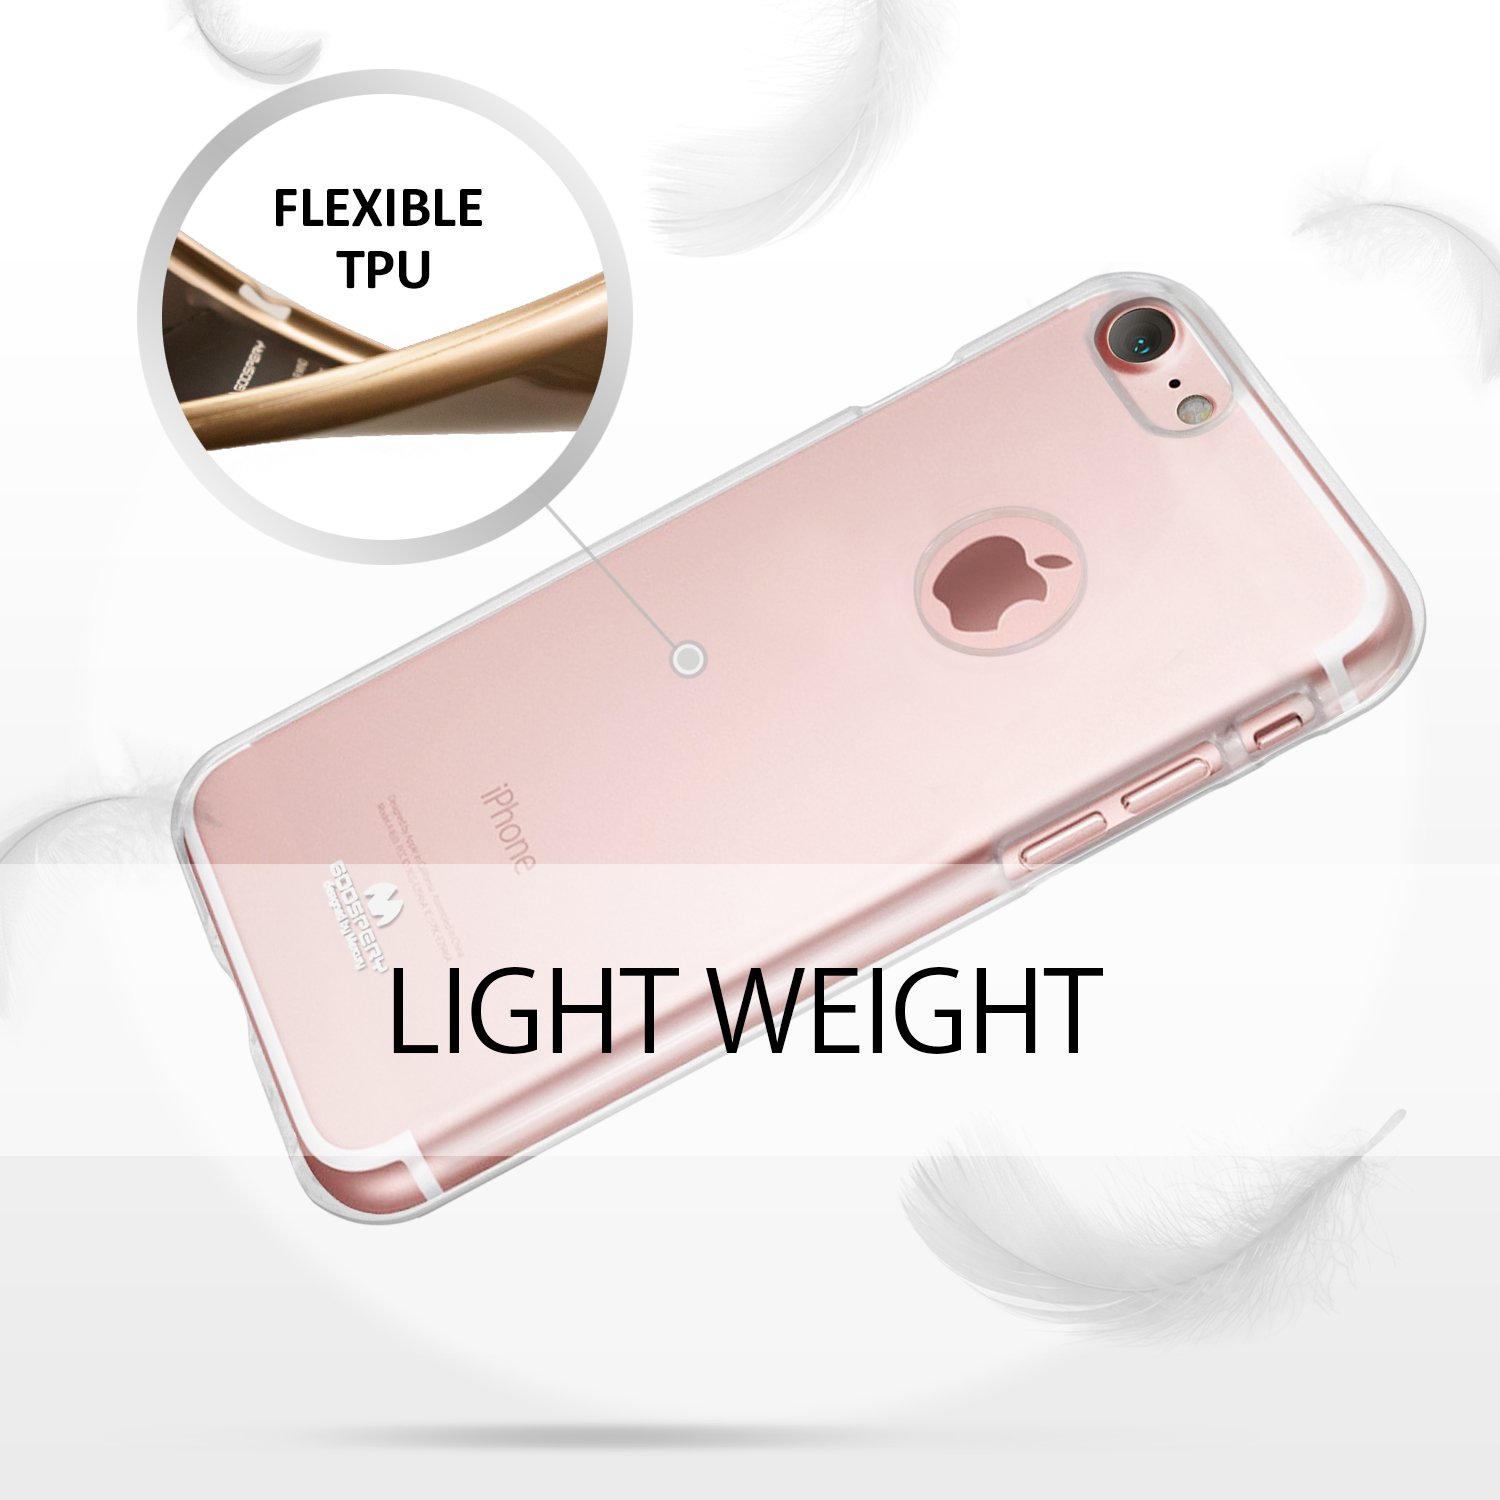 Iphone 7 Case Thin Slim Goospery Flexible Clear X Hybrid Dream Bumper Red Jelly Rubber Tpu Lightweight Cover Impact Resistant For